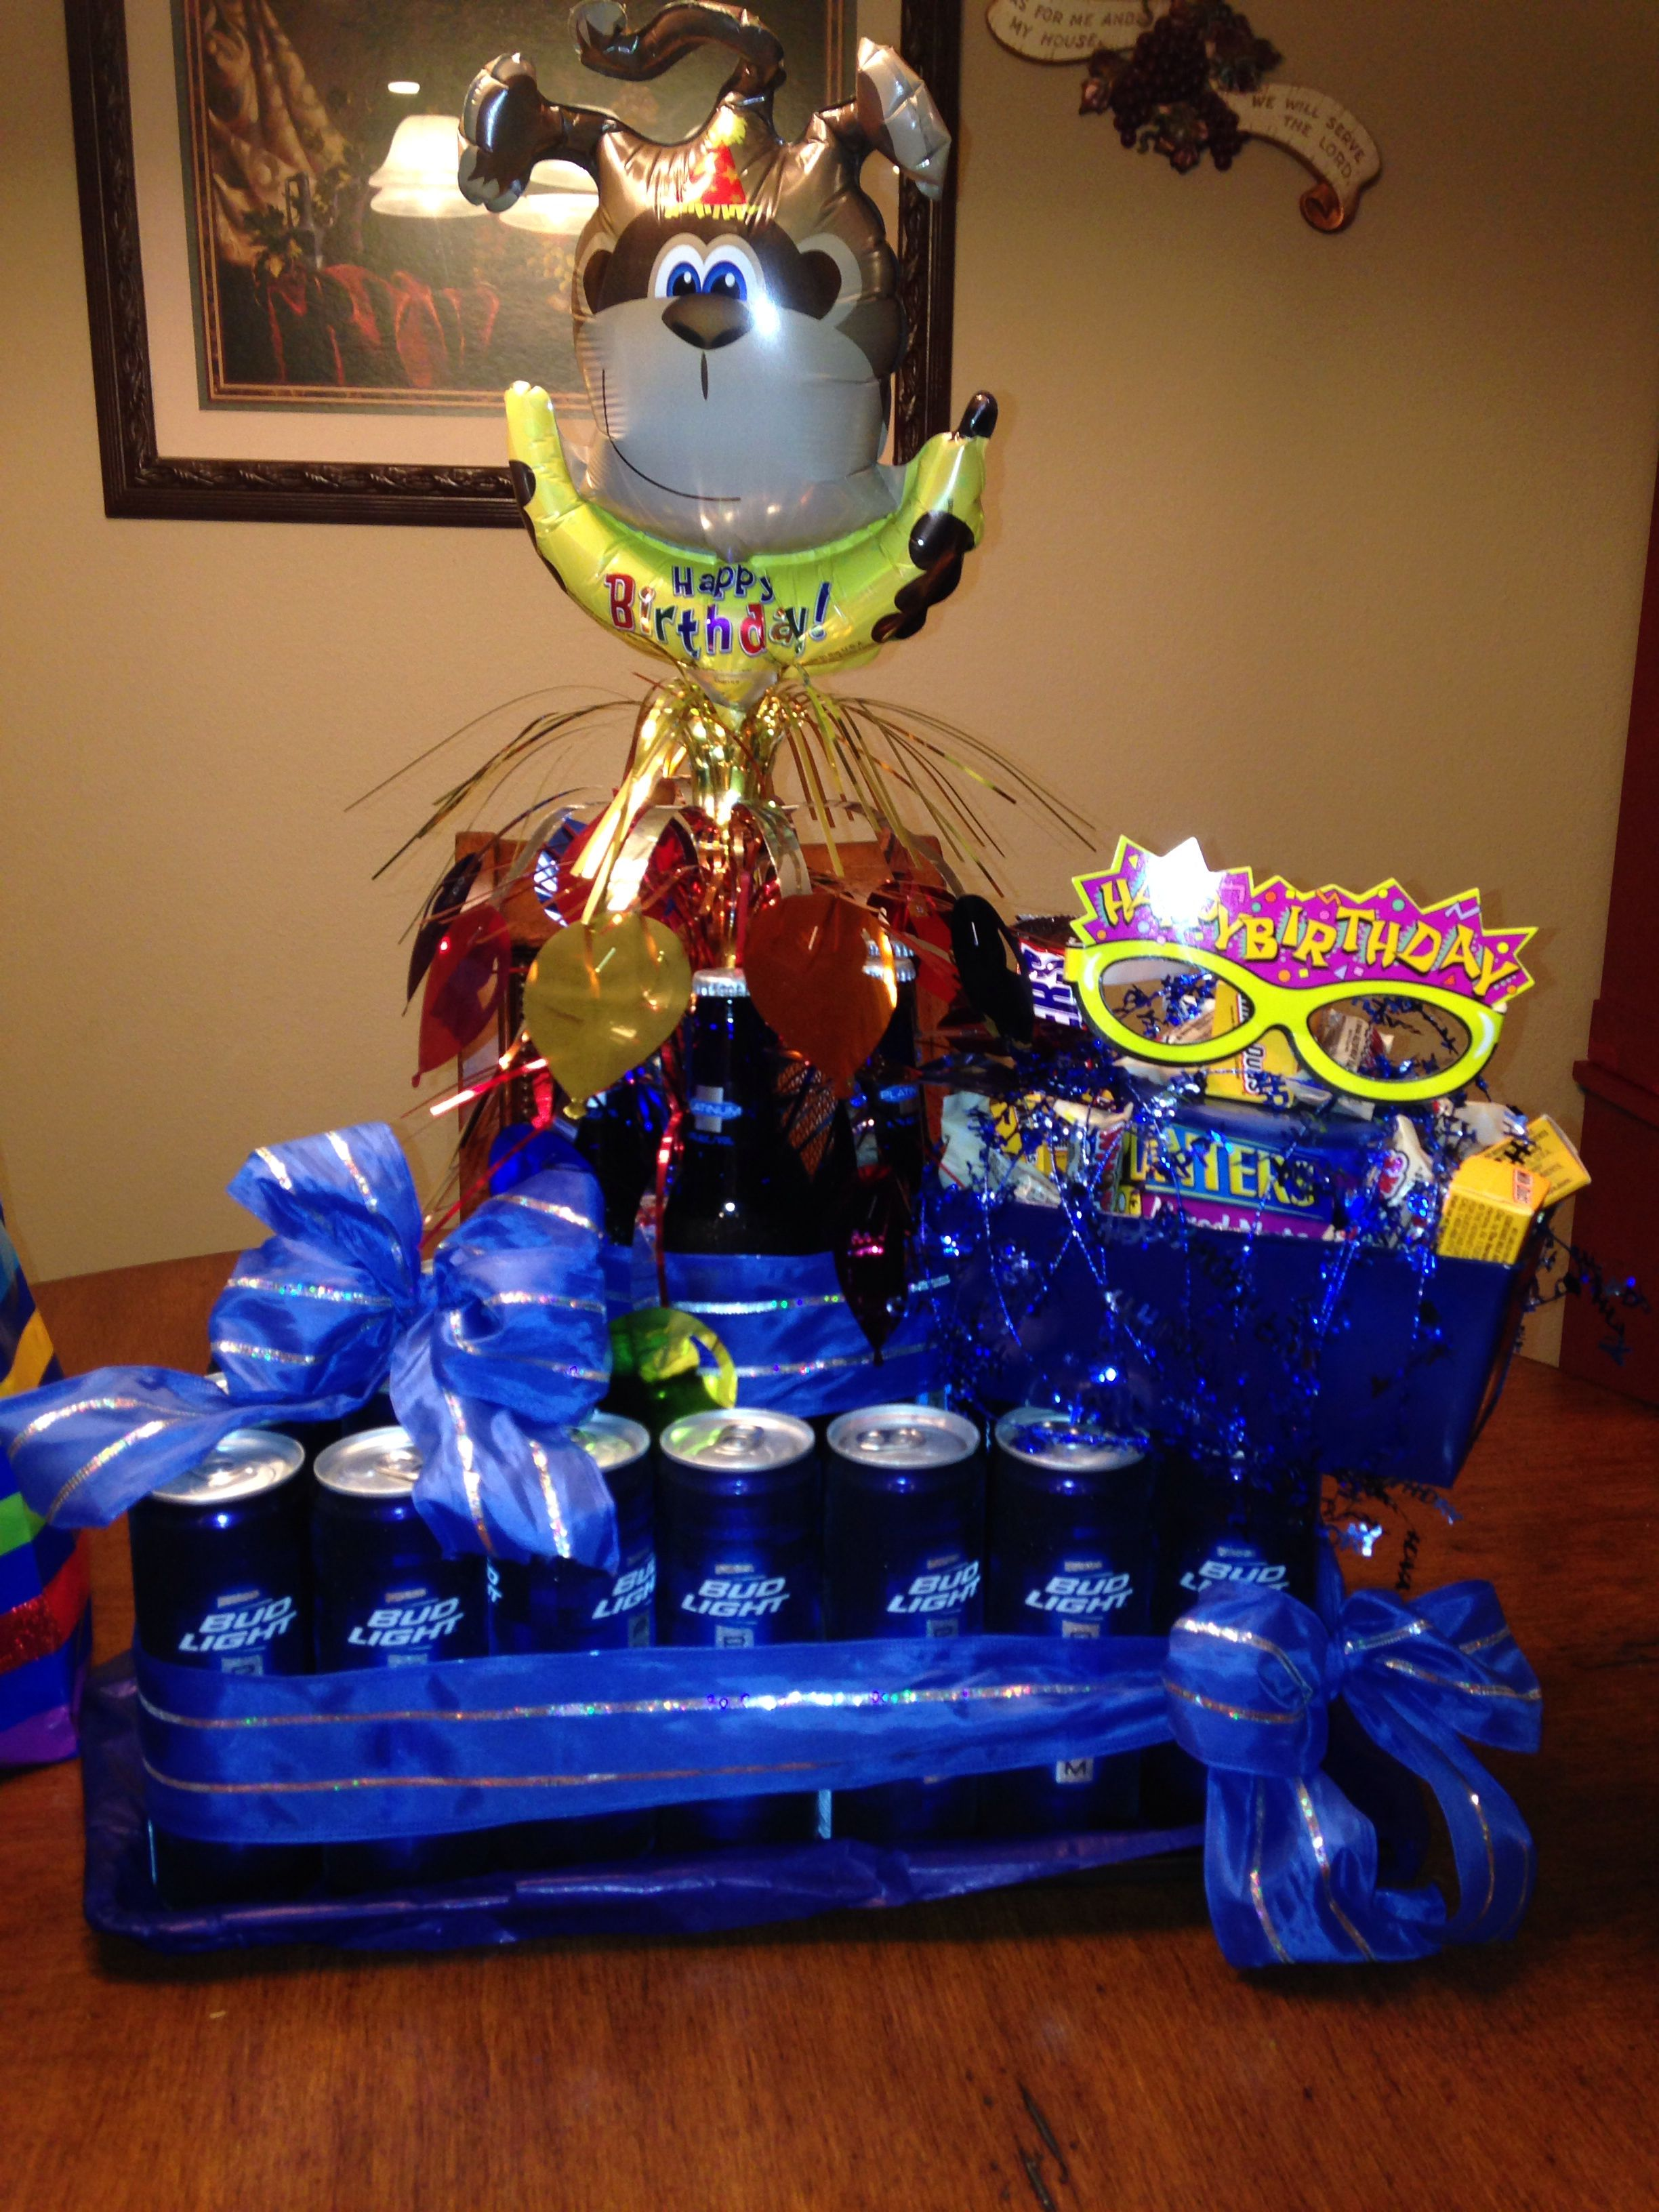 20 Bud Light Decorations Pictures And Ideas On Stem Education Caucus